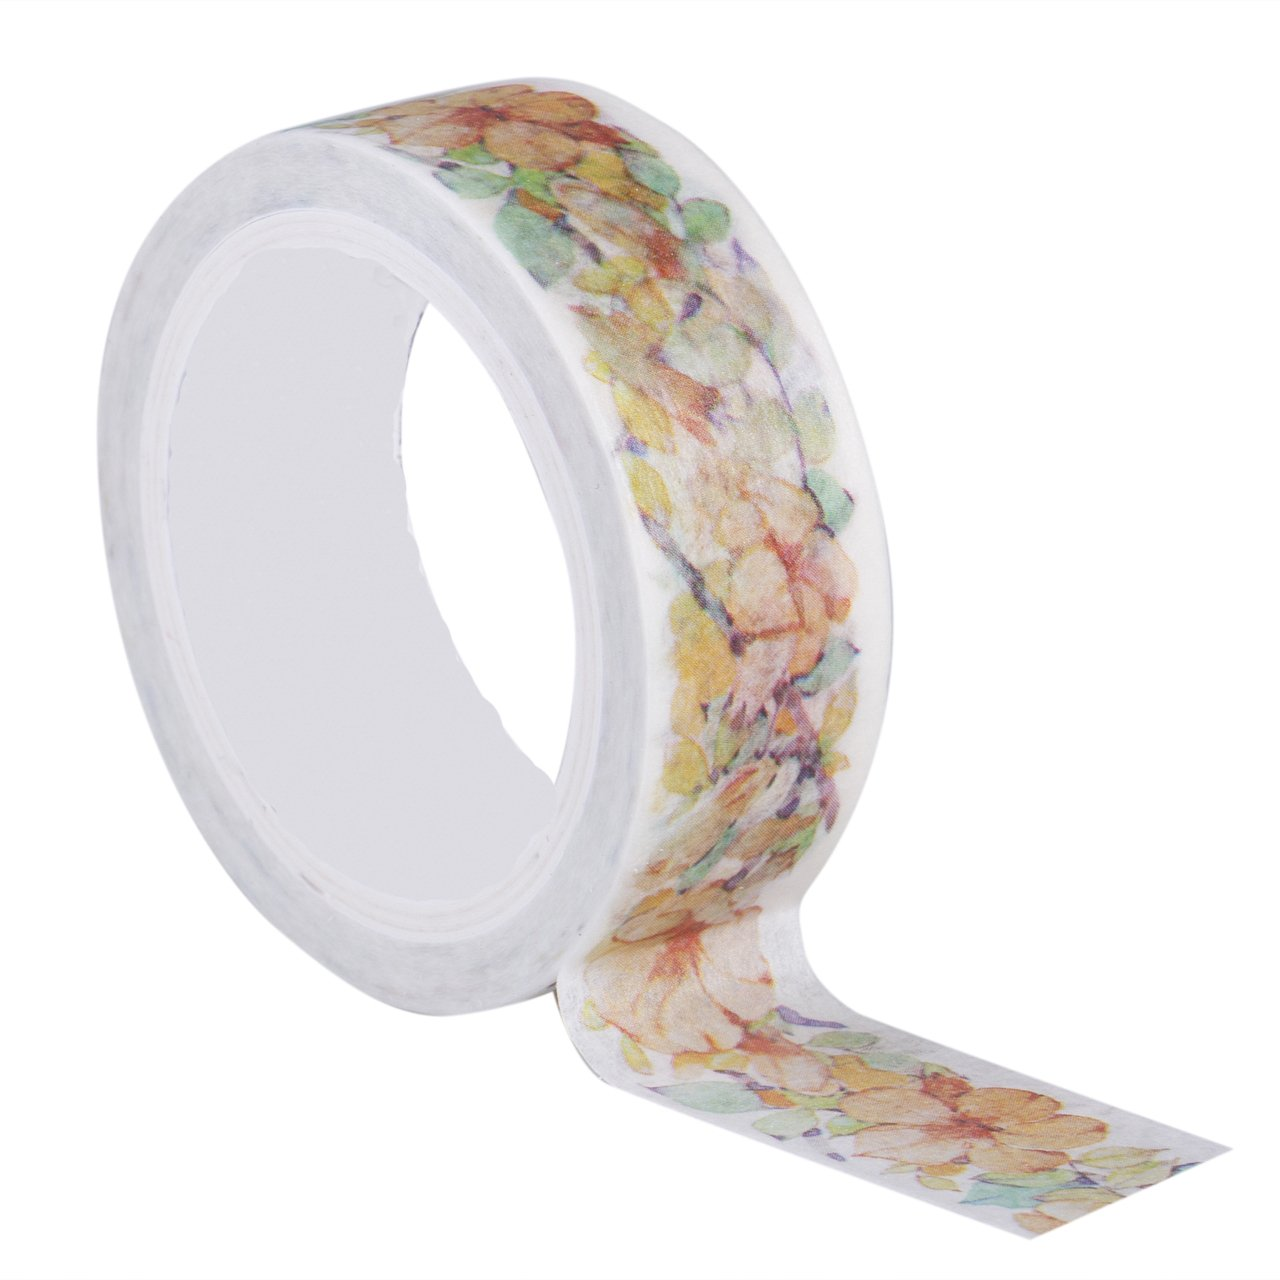 Washi Masking Tape Set Flower Decorative DIY Sticky Paper Adhesive Tape for DIY Crafts and Gift Wrapping Office Party Supplies Scrapbooking(Campbell Flower)